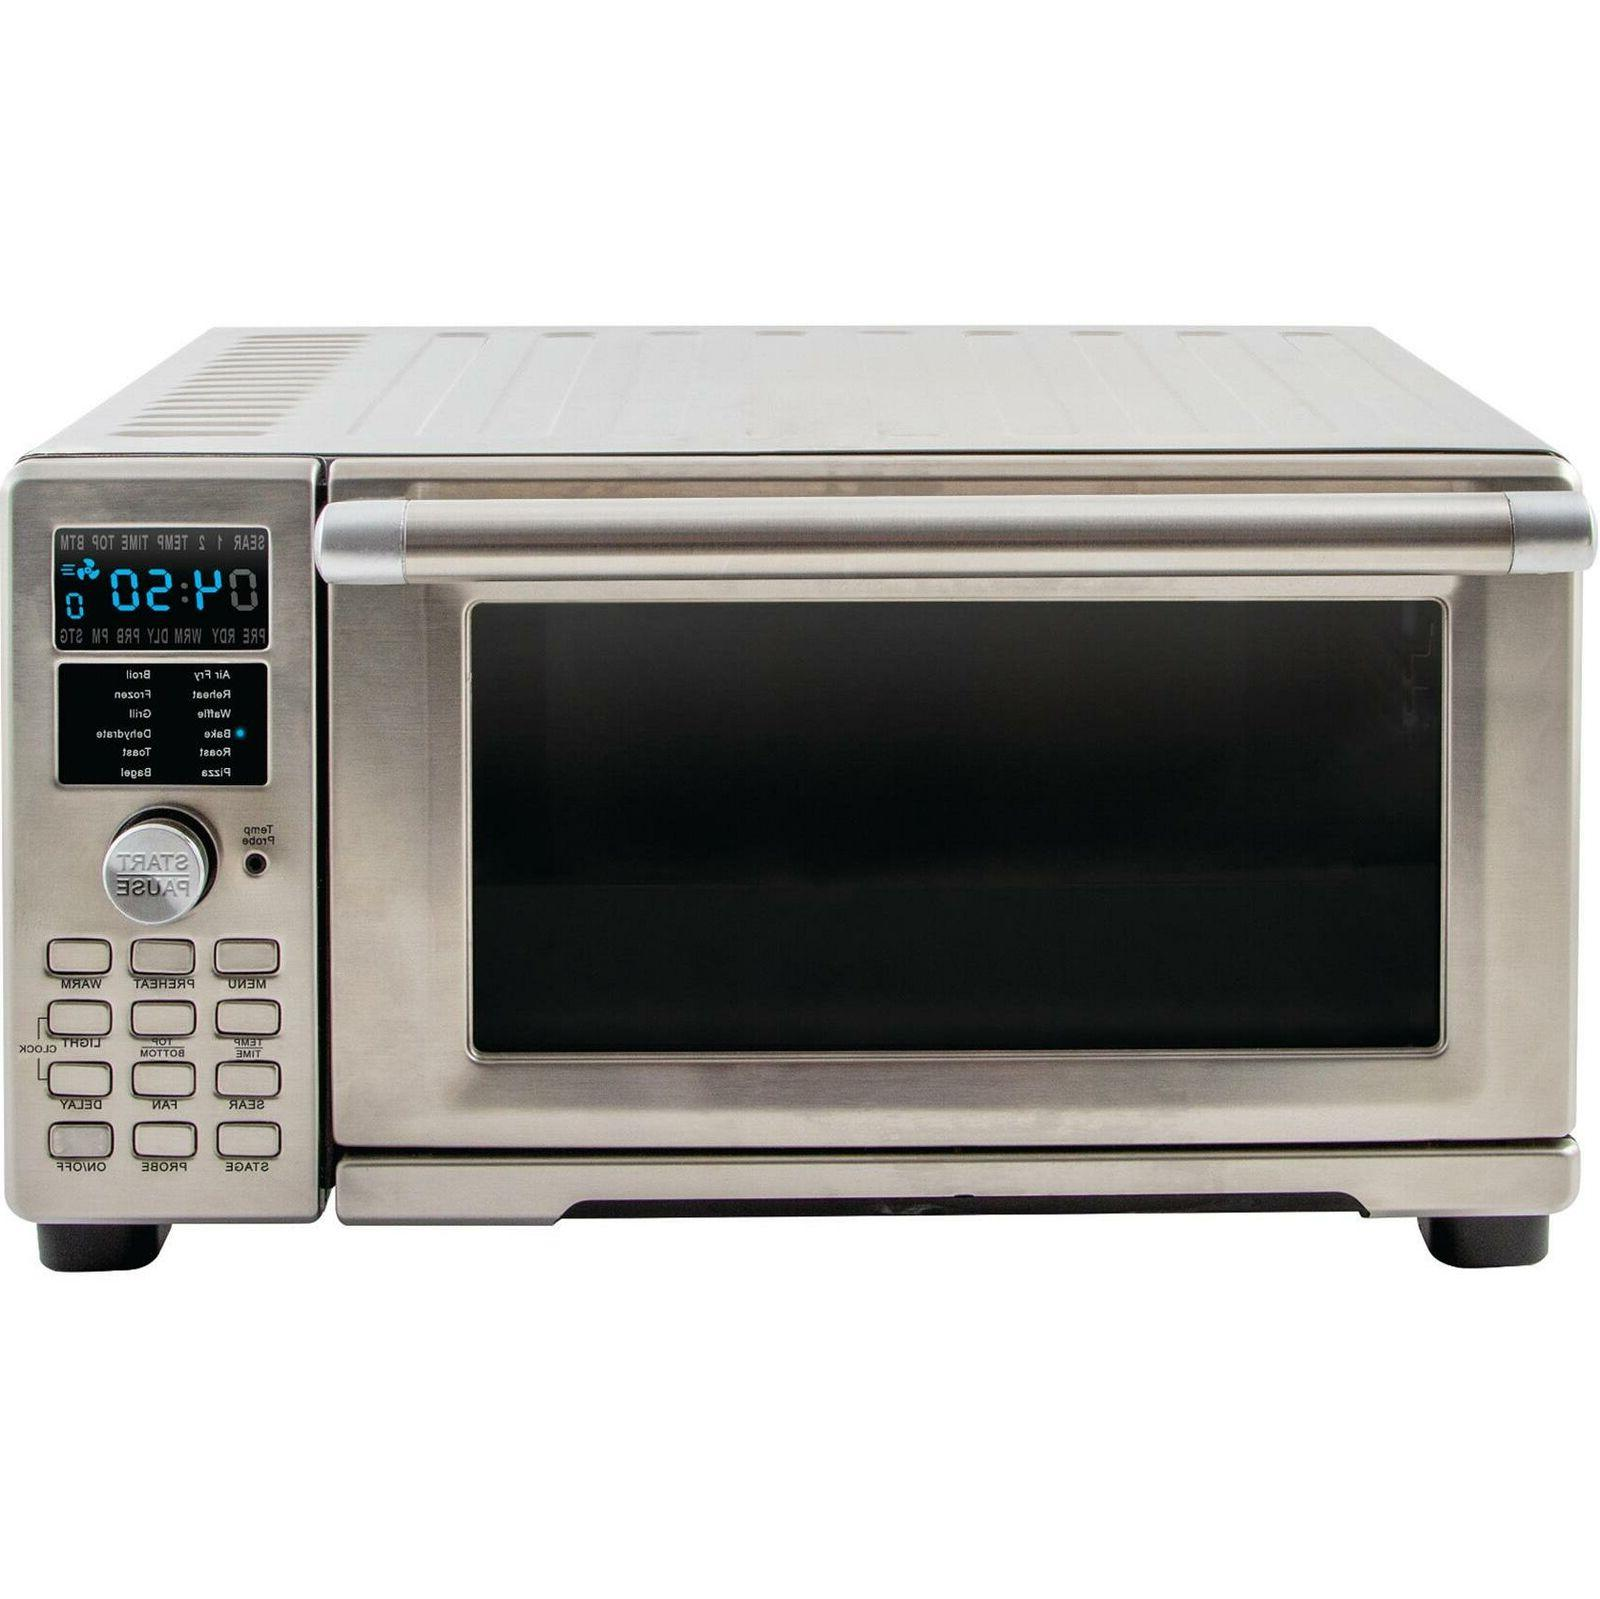 Bravo XL 1800 W Stainless Steel Toaster Oven And Air Fryer T